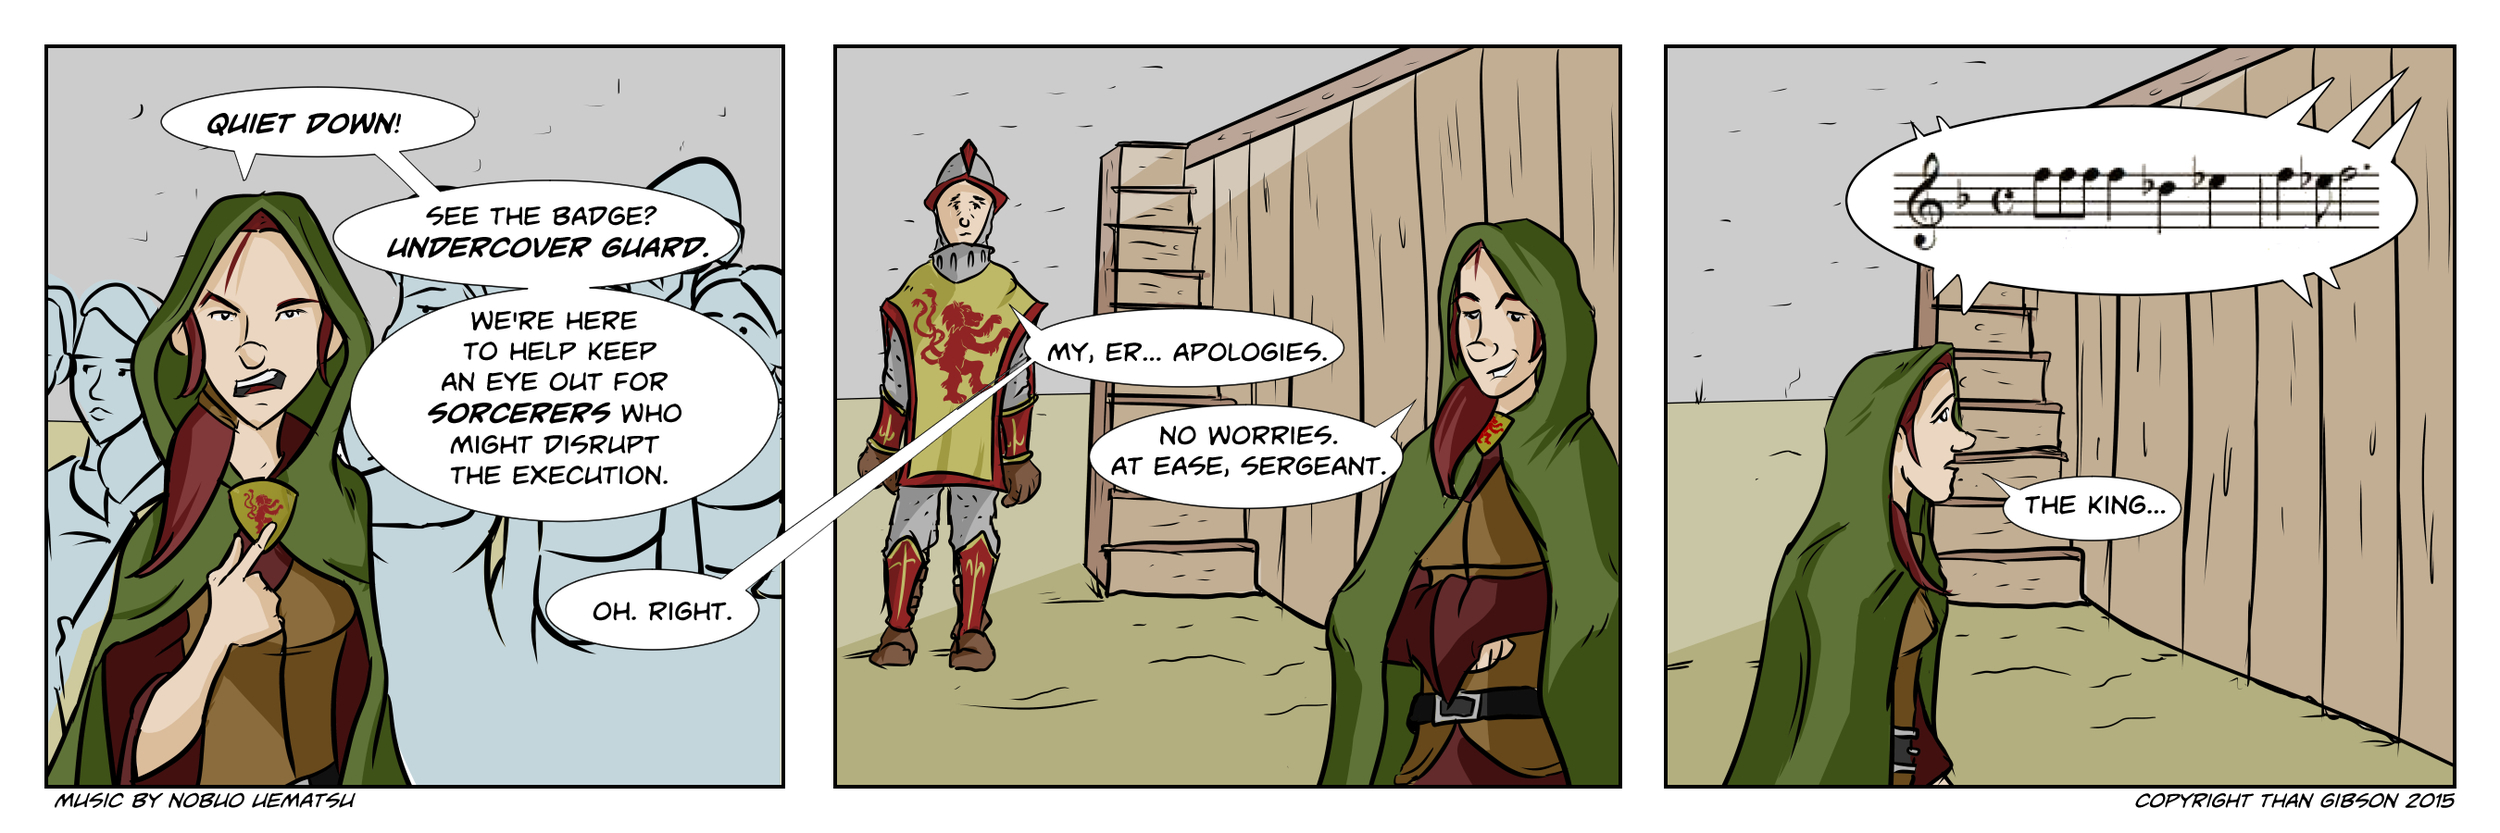 A Chronicle of Thieves -Chapter 2, Strip 06